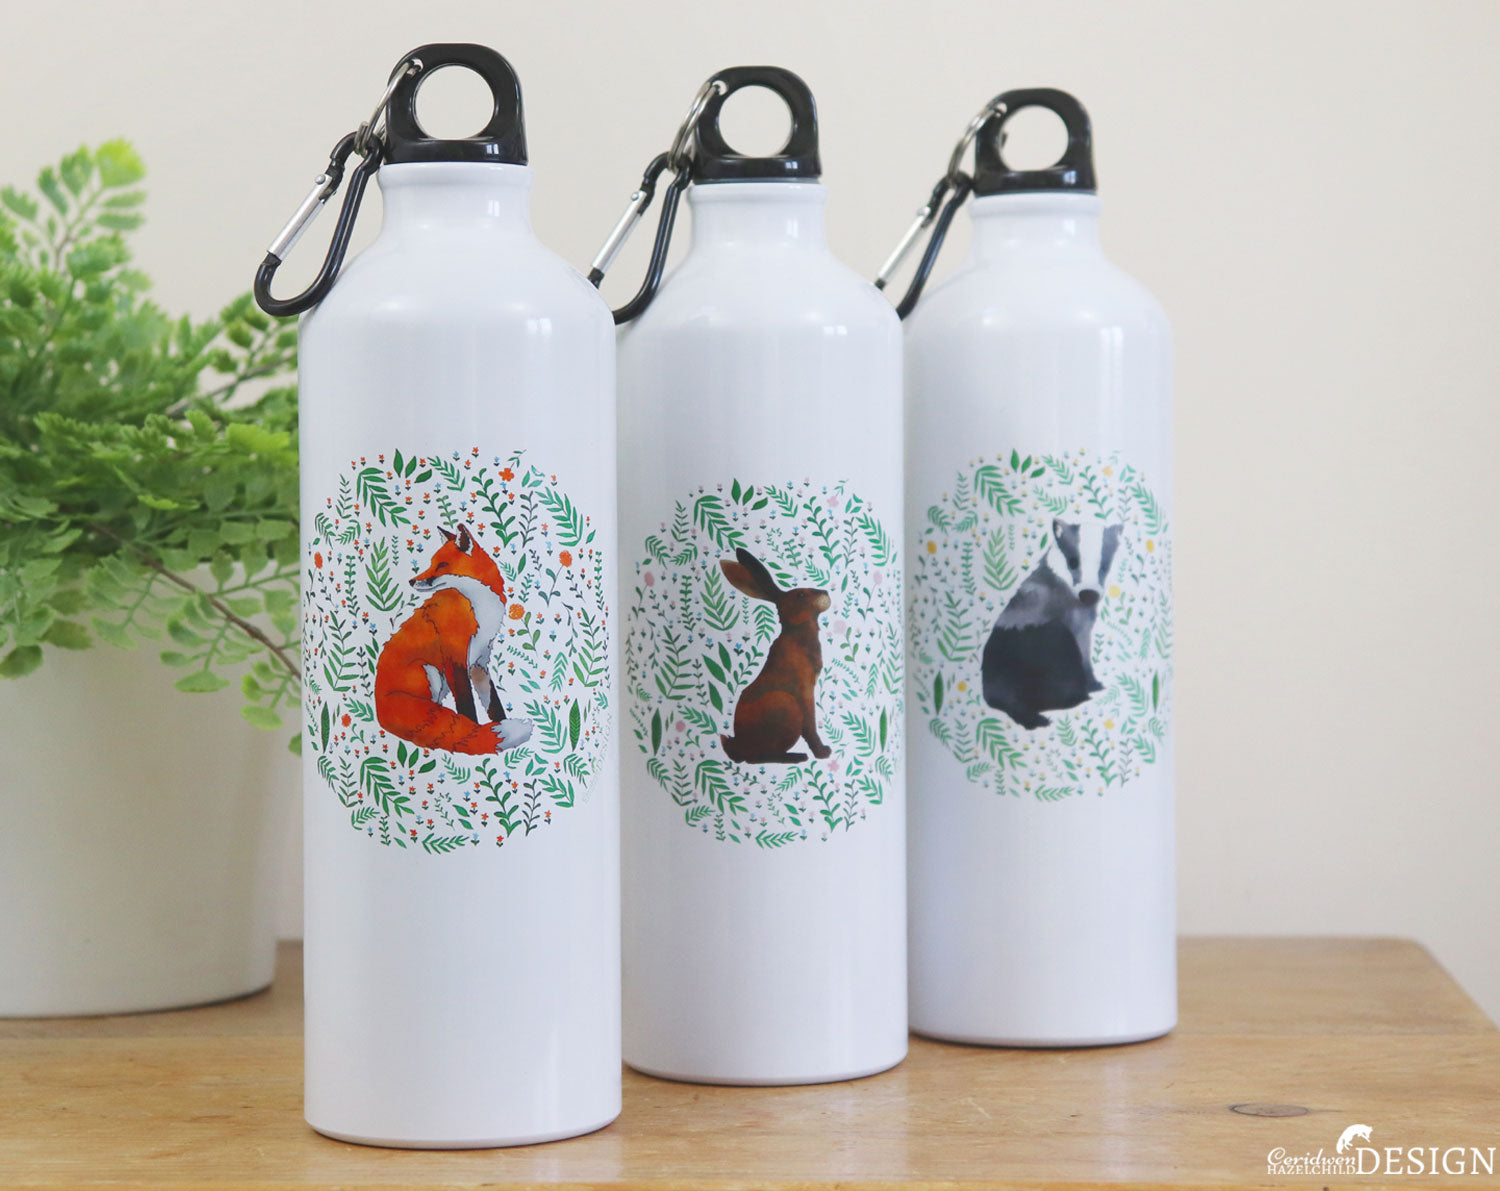 Three water bottles with woodland animal illustrations by Ceridwen Hazelchild Design.